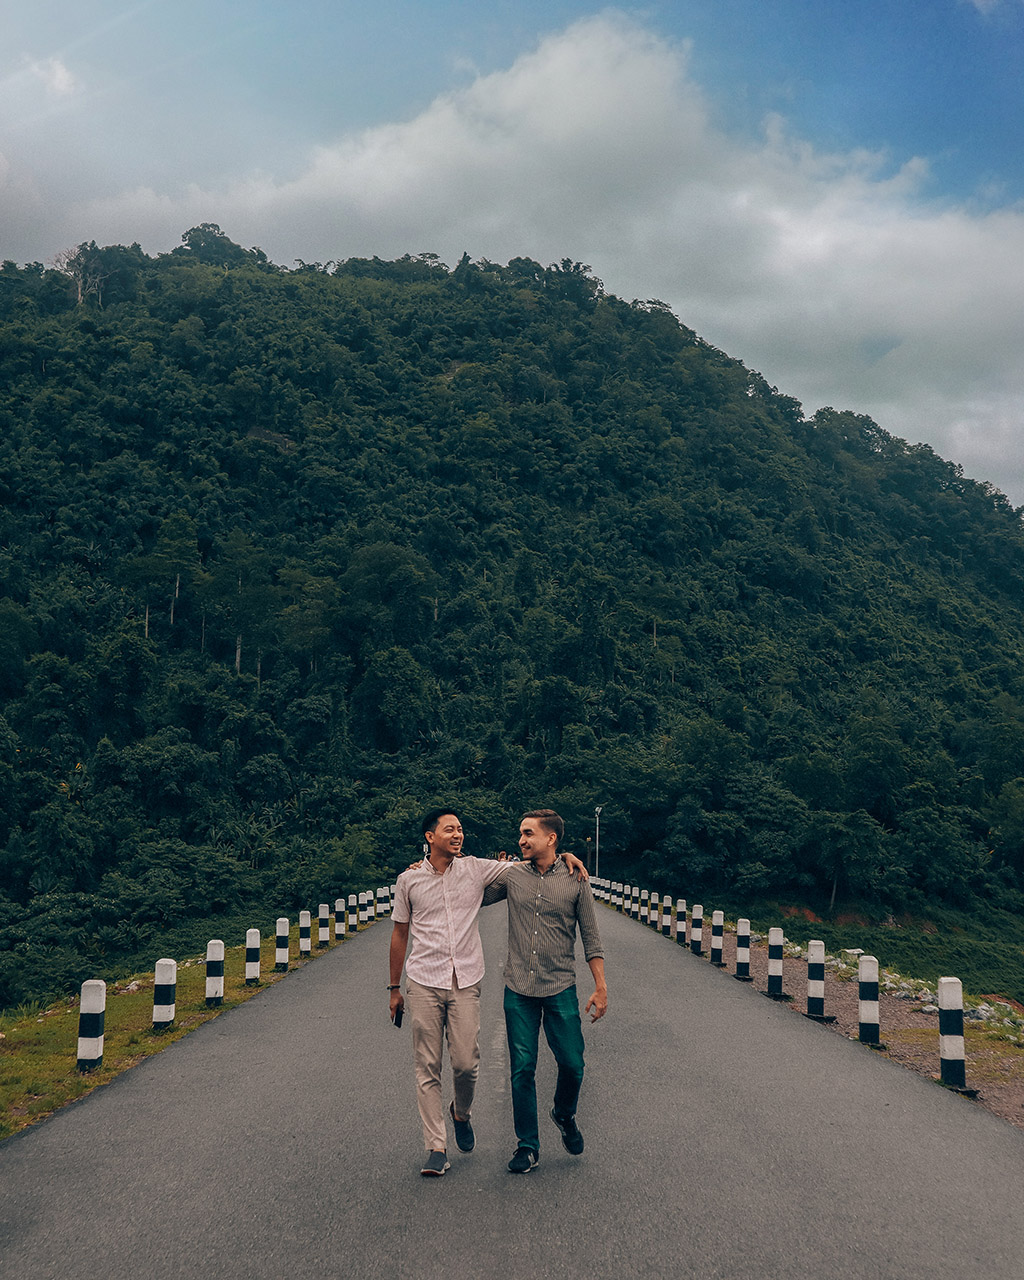 Travel blog by Bangkok based gay couple